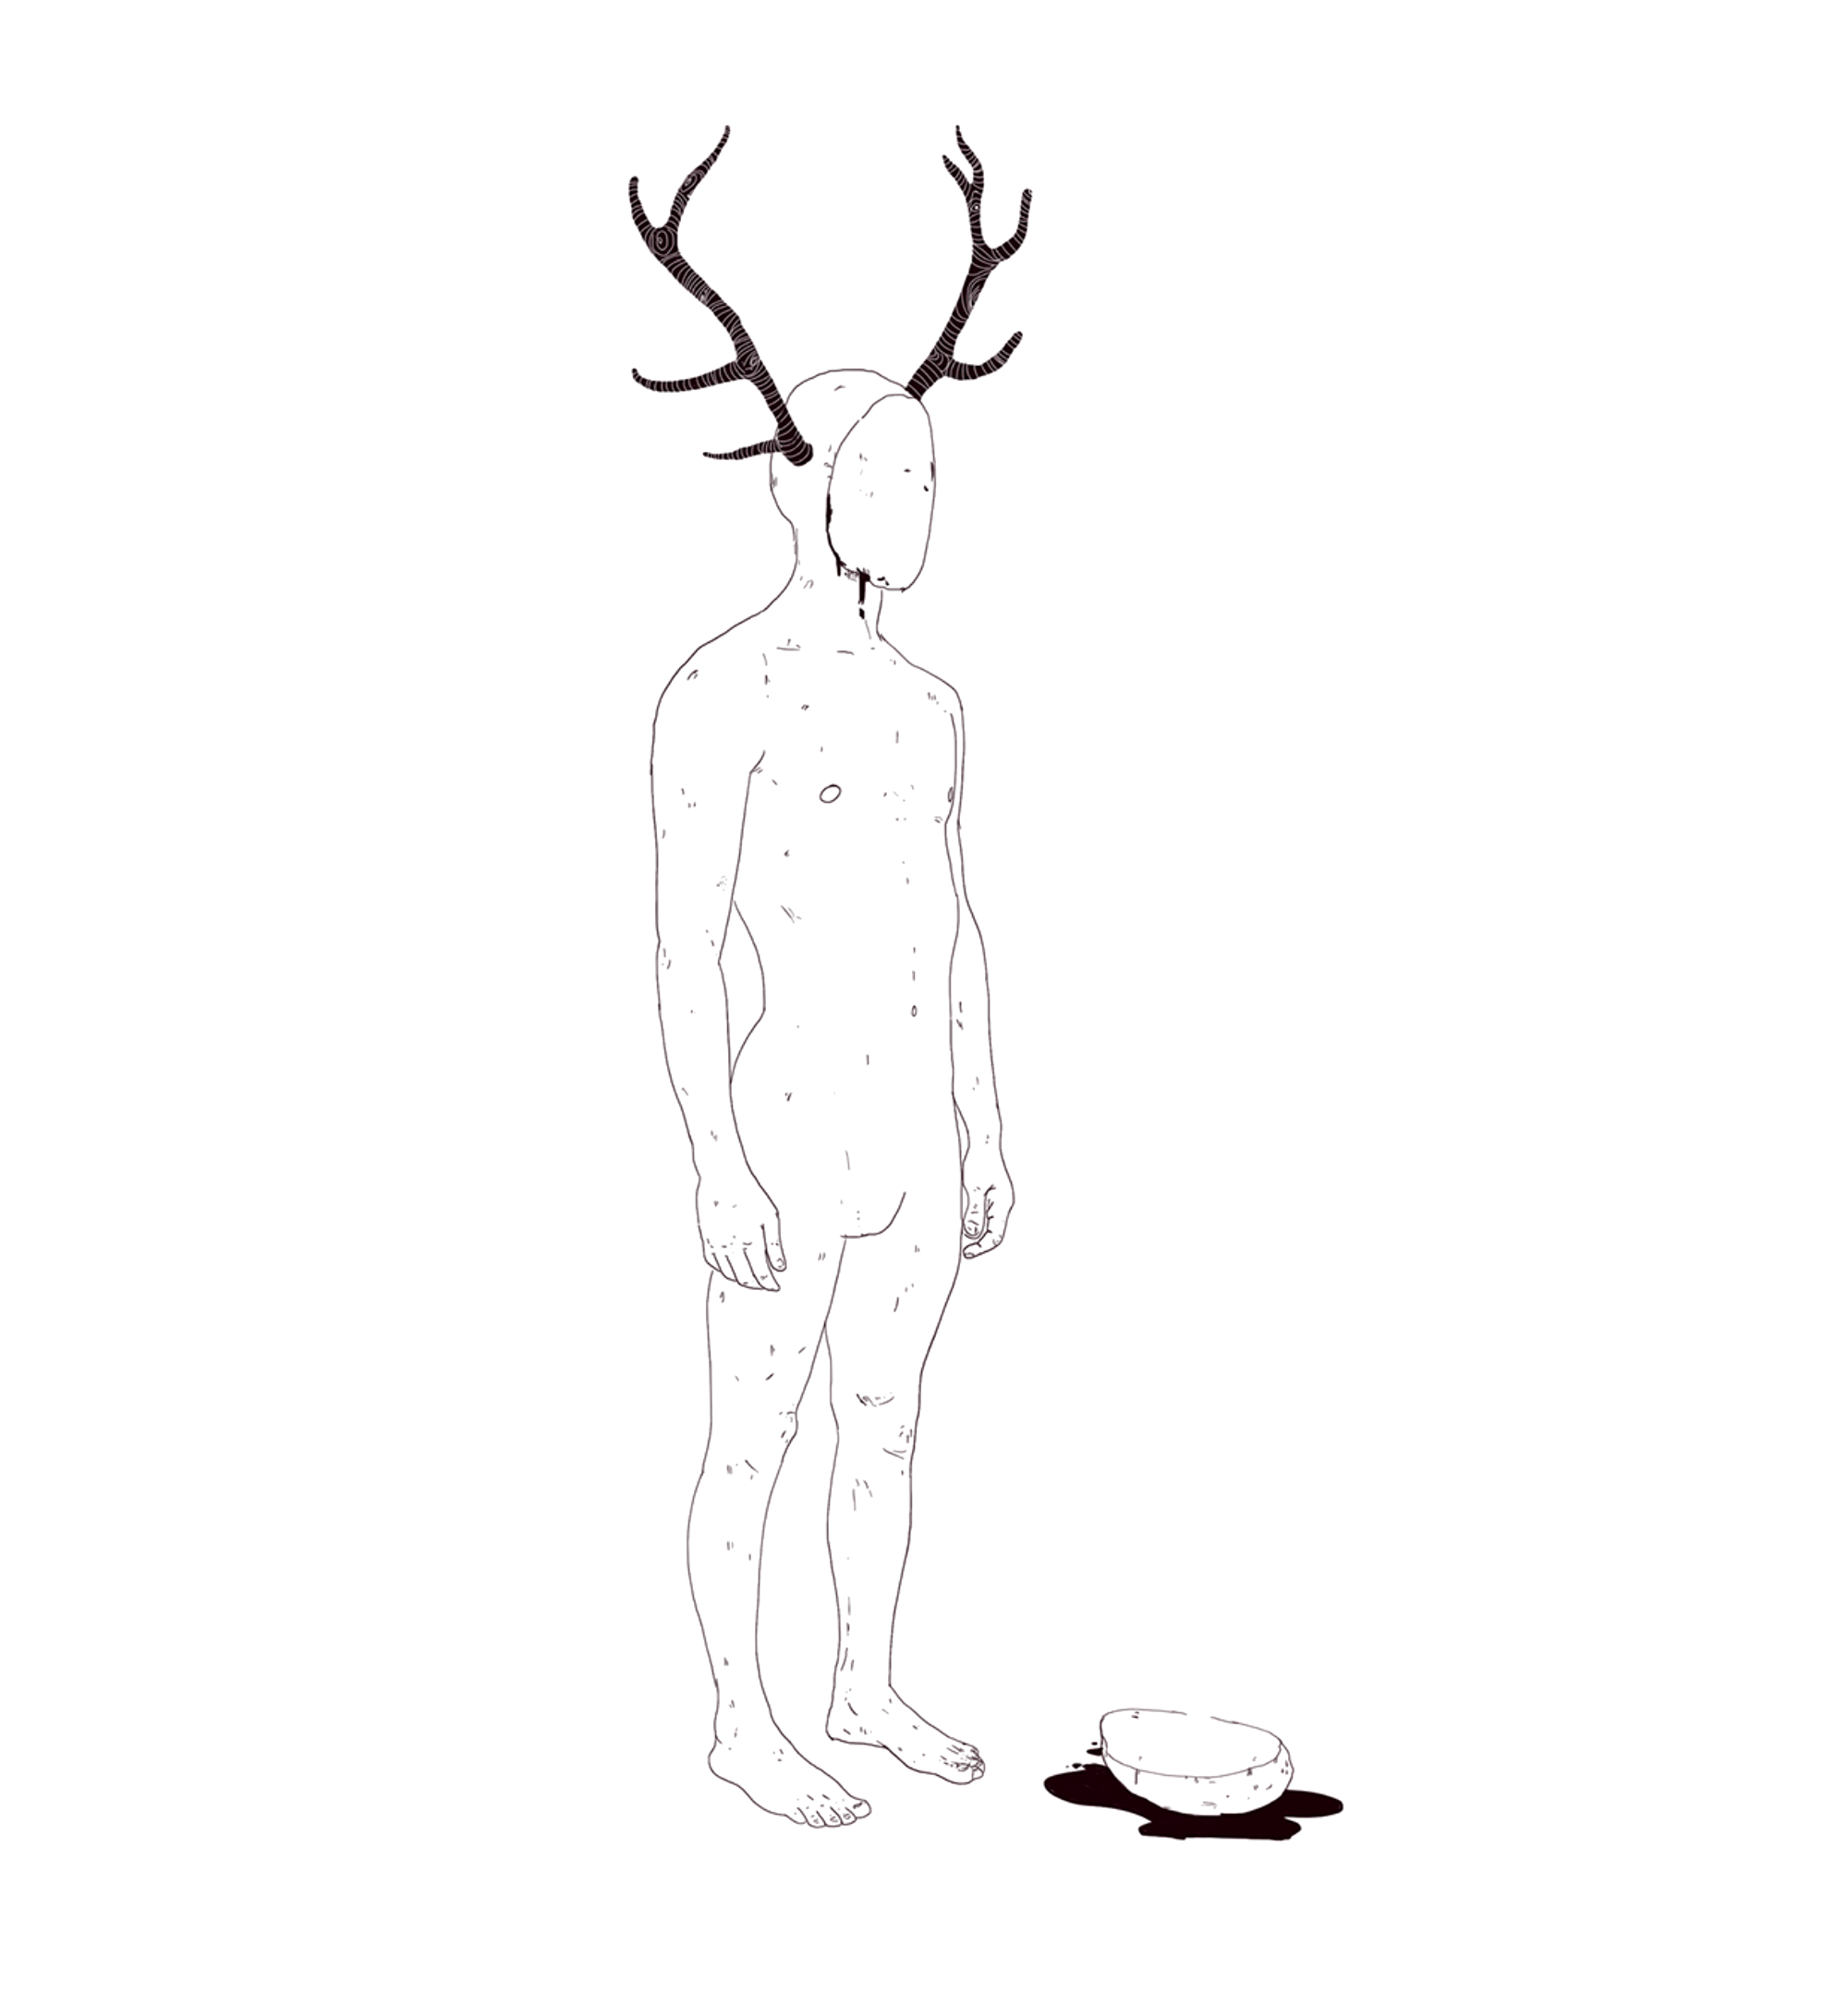 constantinos chaidalis illustration nude quirky antlers